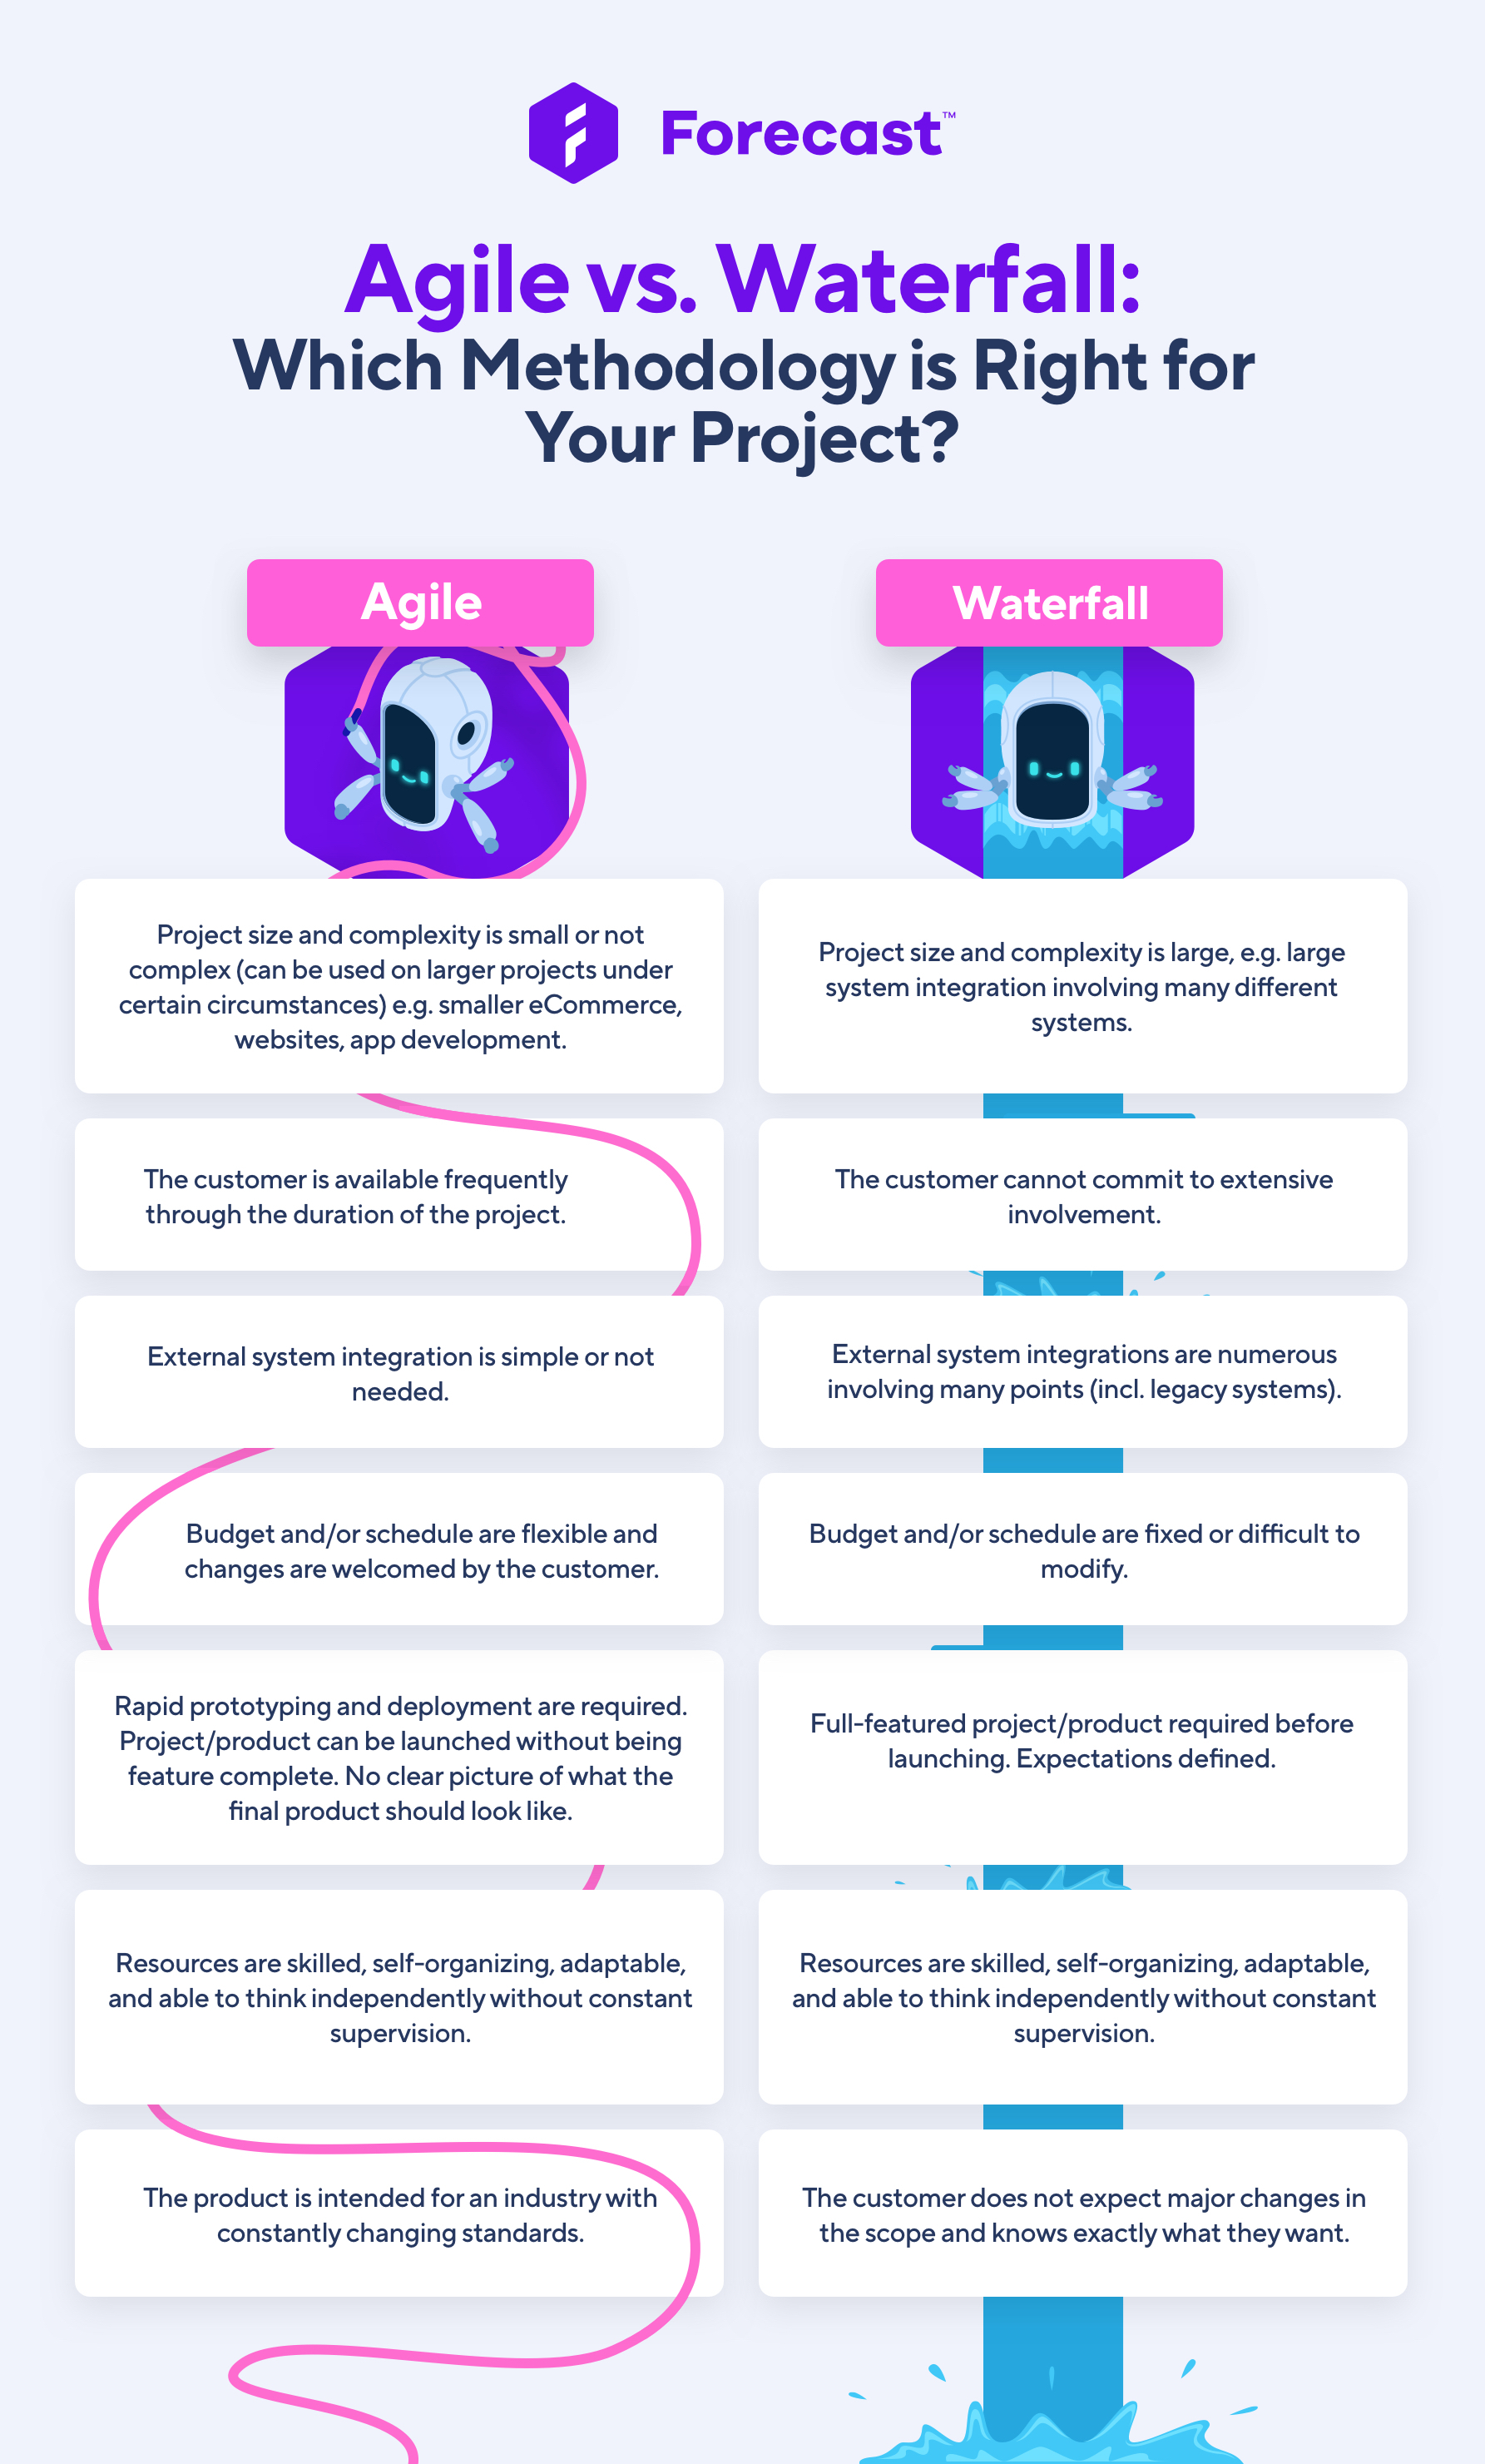 Agile vs. Waterfall Which Methodology is Right for Your Project (infographic)